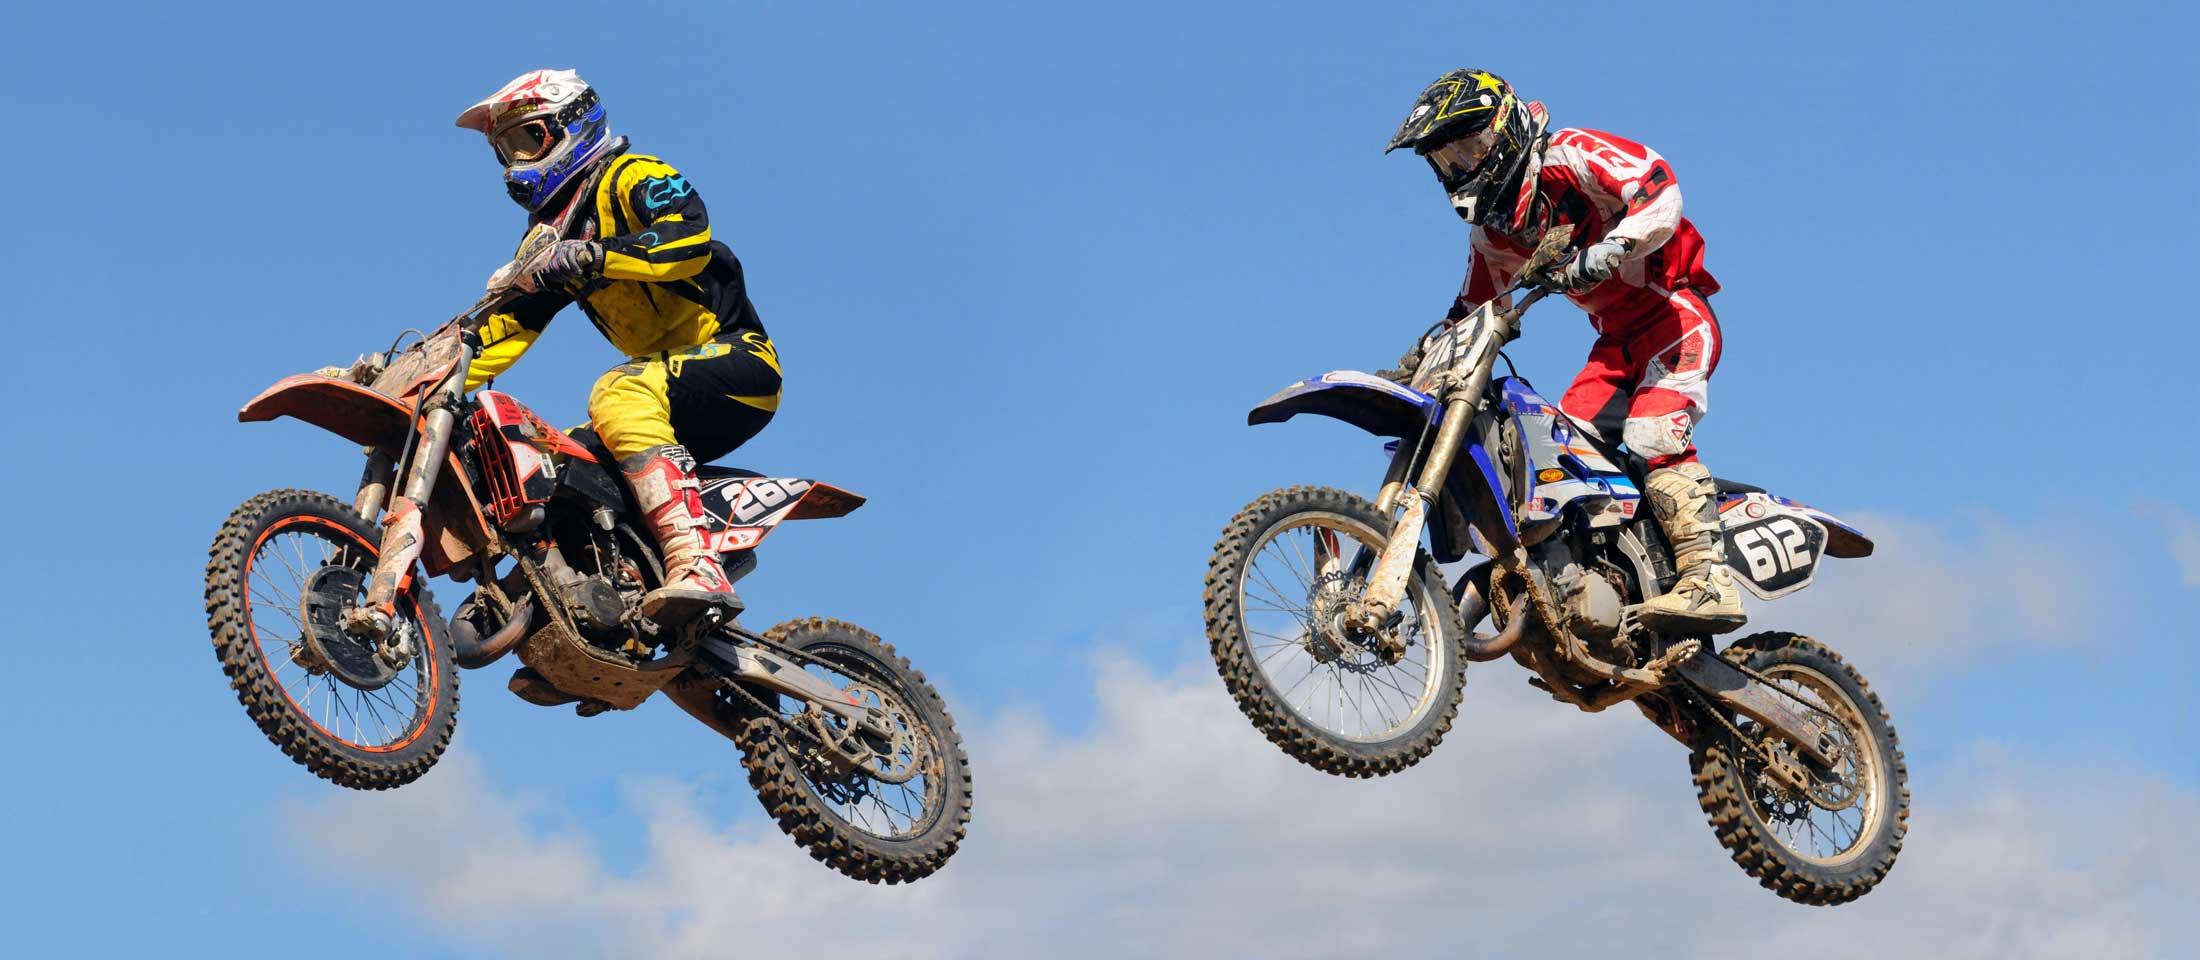 two motocross bikers jumping